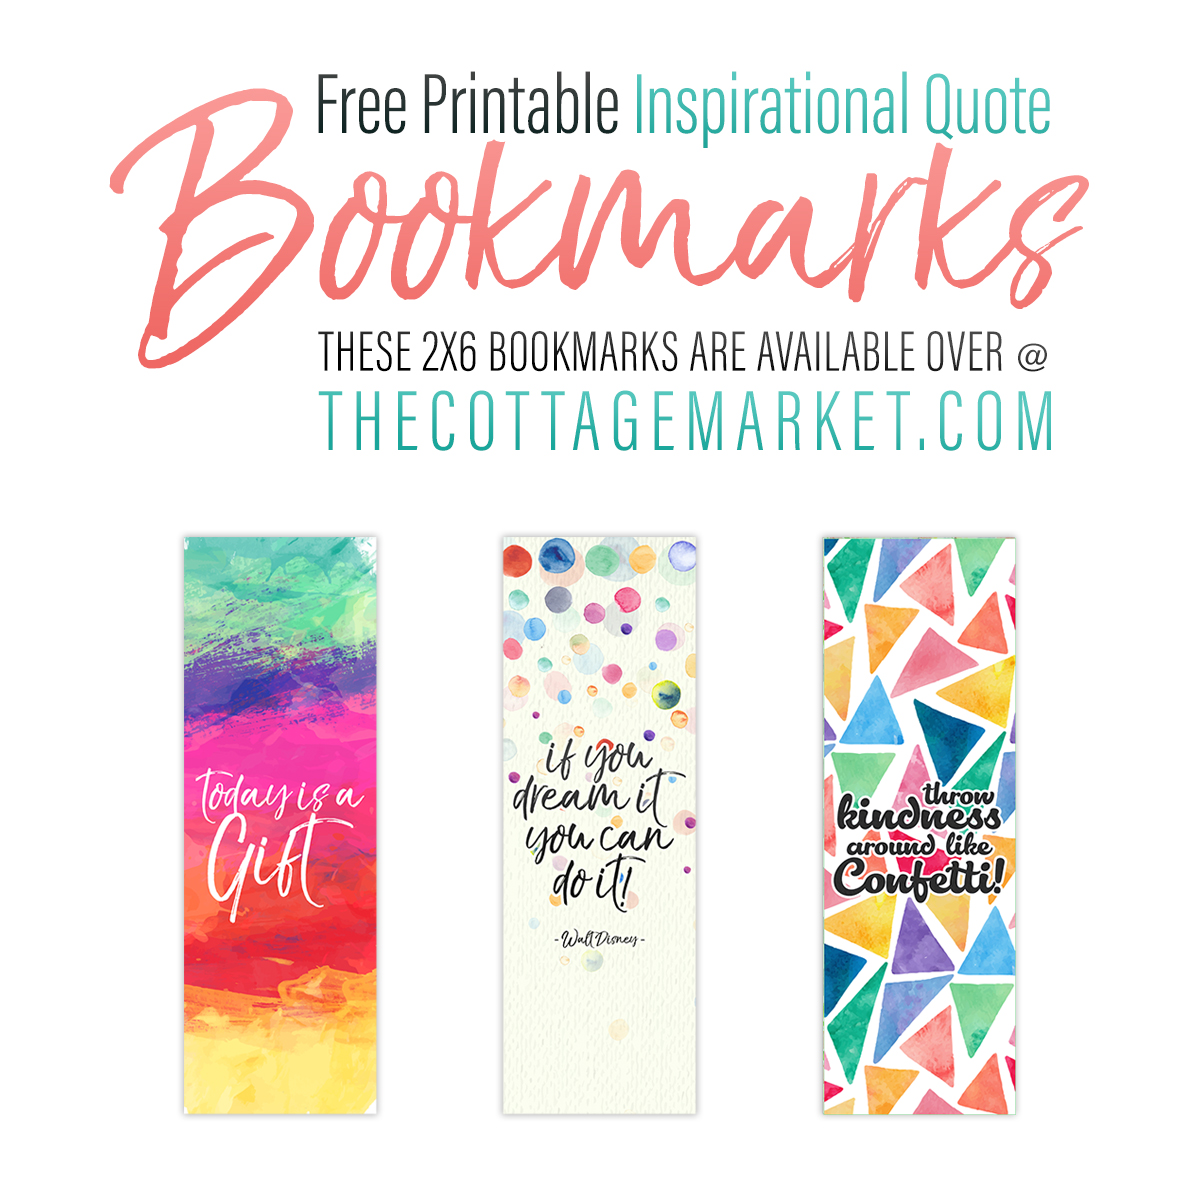 photograph about Bookmarks Printable identify Free of charge Printable Inspirational Estimate Bookmarks - The Cottage